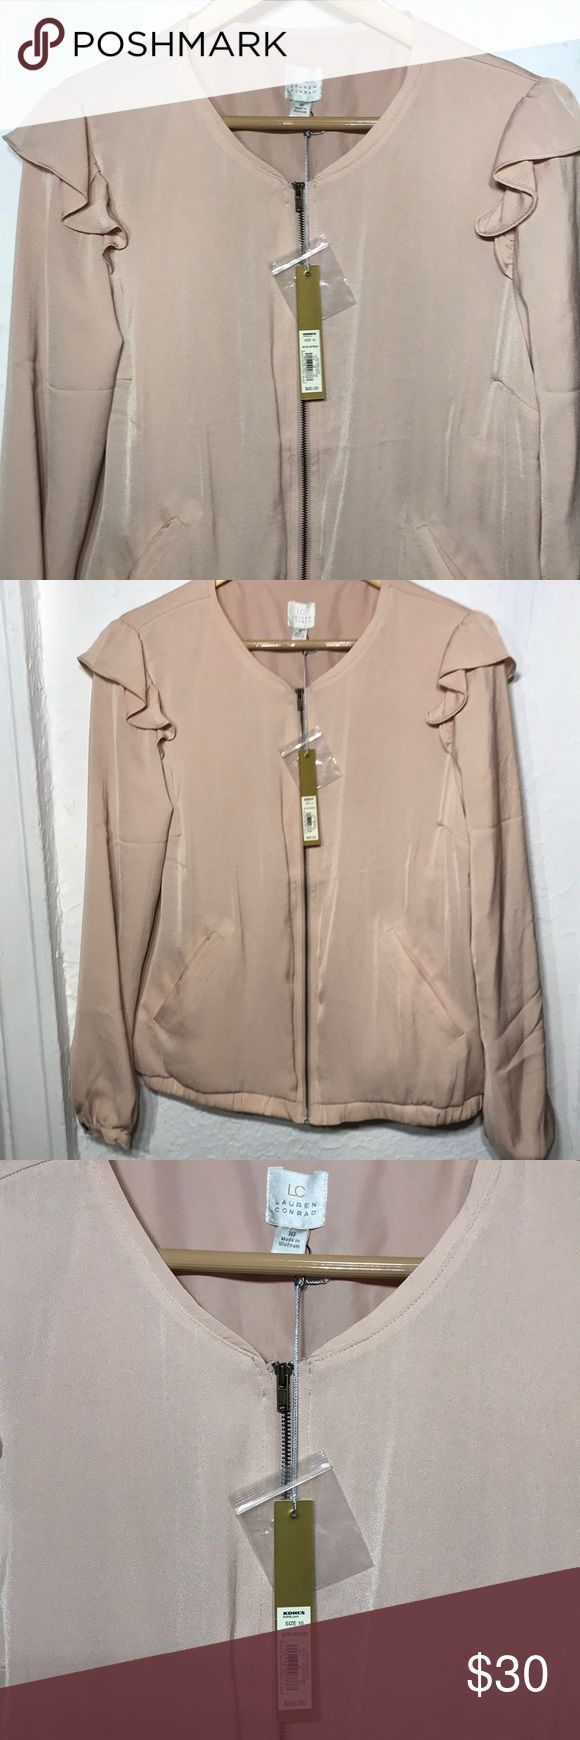 "LAUREN CONRAD BLUSH RETRO BOMBER JACKET NWT PERFECT FOR THE SPRING!! SUPER CUTE RETRO BOMBER JACKET BY LAUREN CONRAD IN AN ADORABLE LIGHT PINK BLUSH TONE. NWT SIZE 10 MEASURES  24"" LENGTH 36"" WAIST  36"" BUST SLEEVES ARE 17"" LENGTH  SHOULDER TO UNDERARM APPROX 8"" LC Lauren Conrad Jackets & Coats"